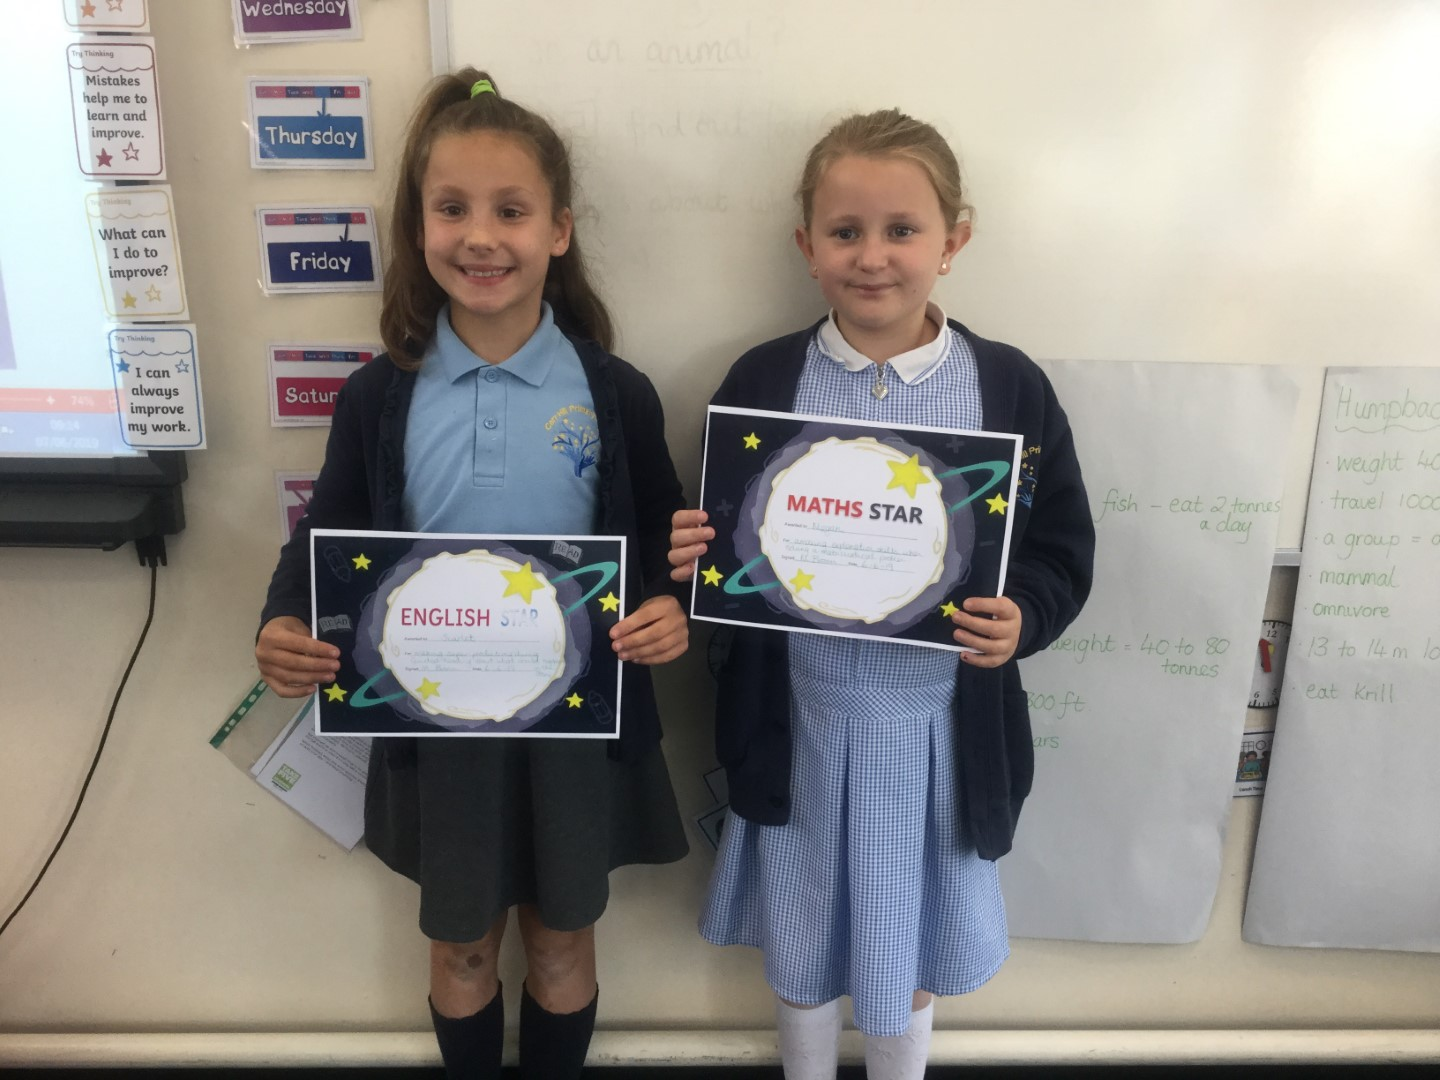 Our 'English & Maths Stars' are Scarlet and Megan. Scarlet made some excellent contributions during our Guided Reading Session when predicting what could happen in the story, and Megan for her clear explanation of how she solved a mathematical challenge involving the conversion of metres and centimetres. Well done to you both! -